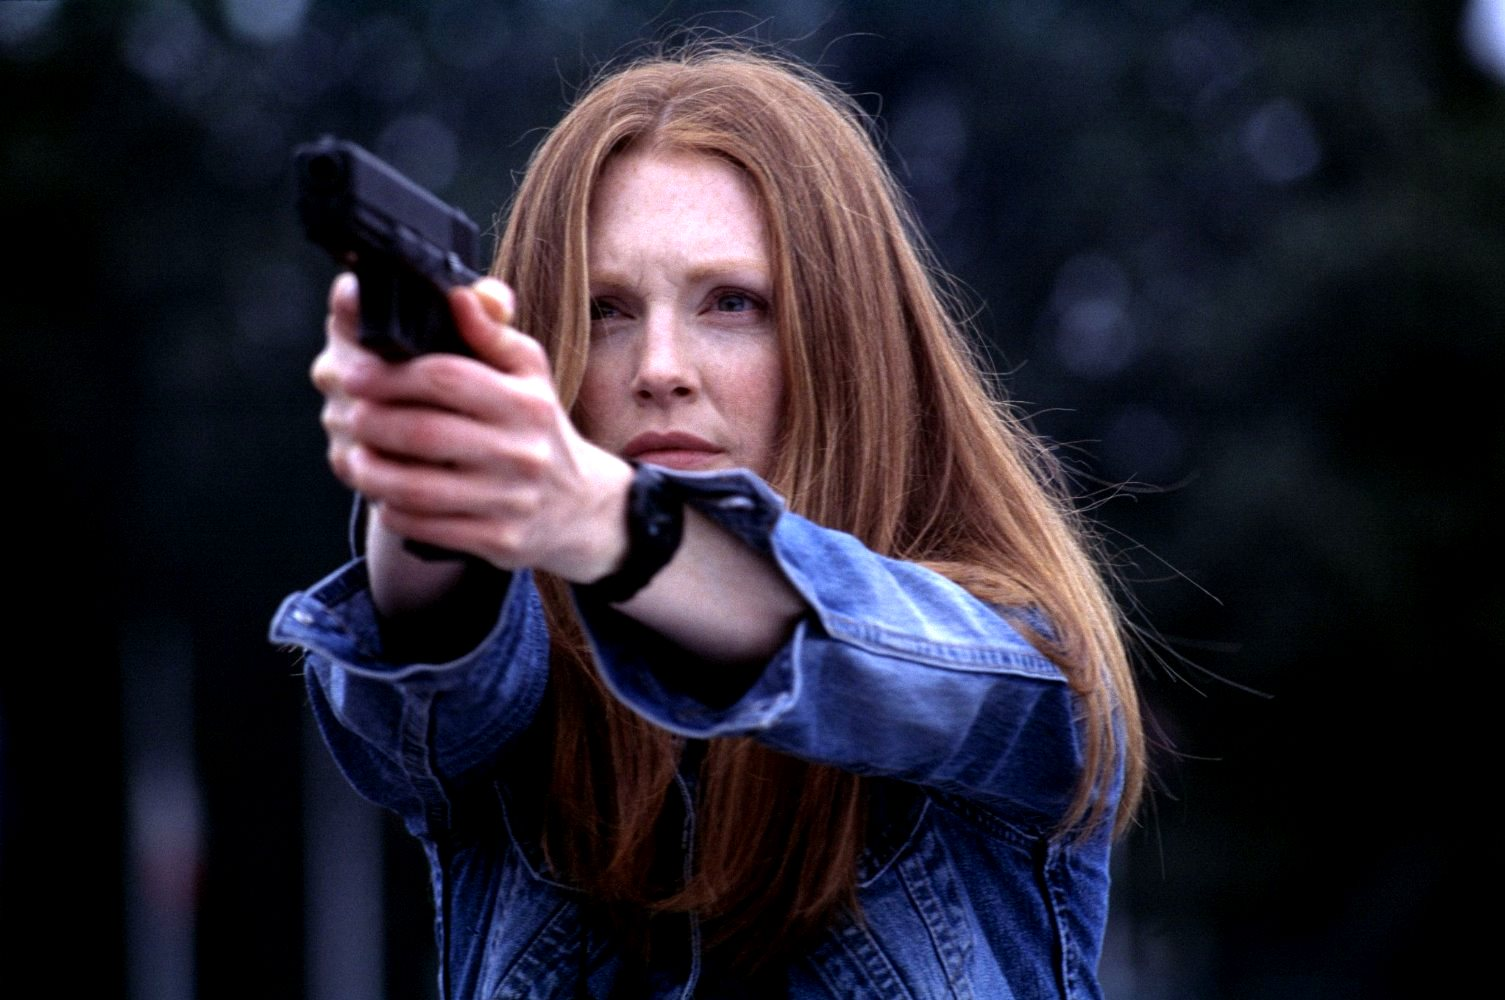 Julianne Moore as the replacement Clarice Starling in Hannibal (2001)